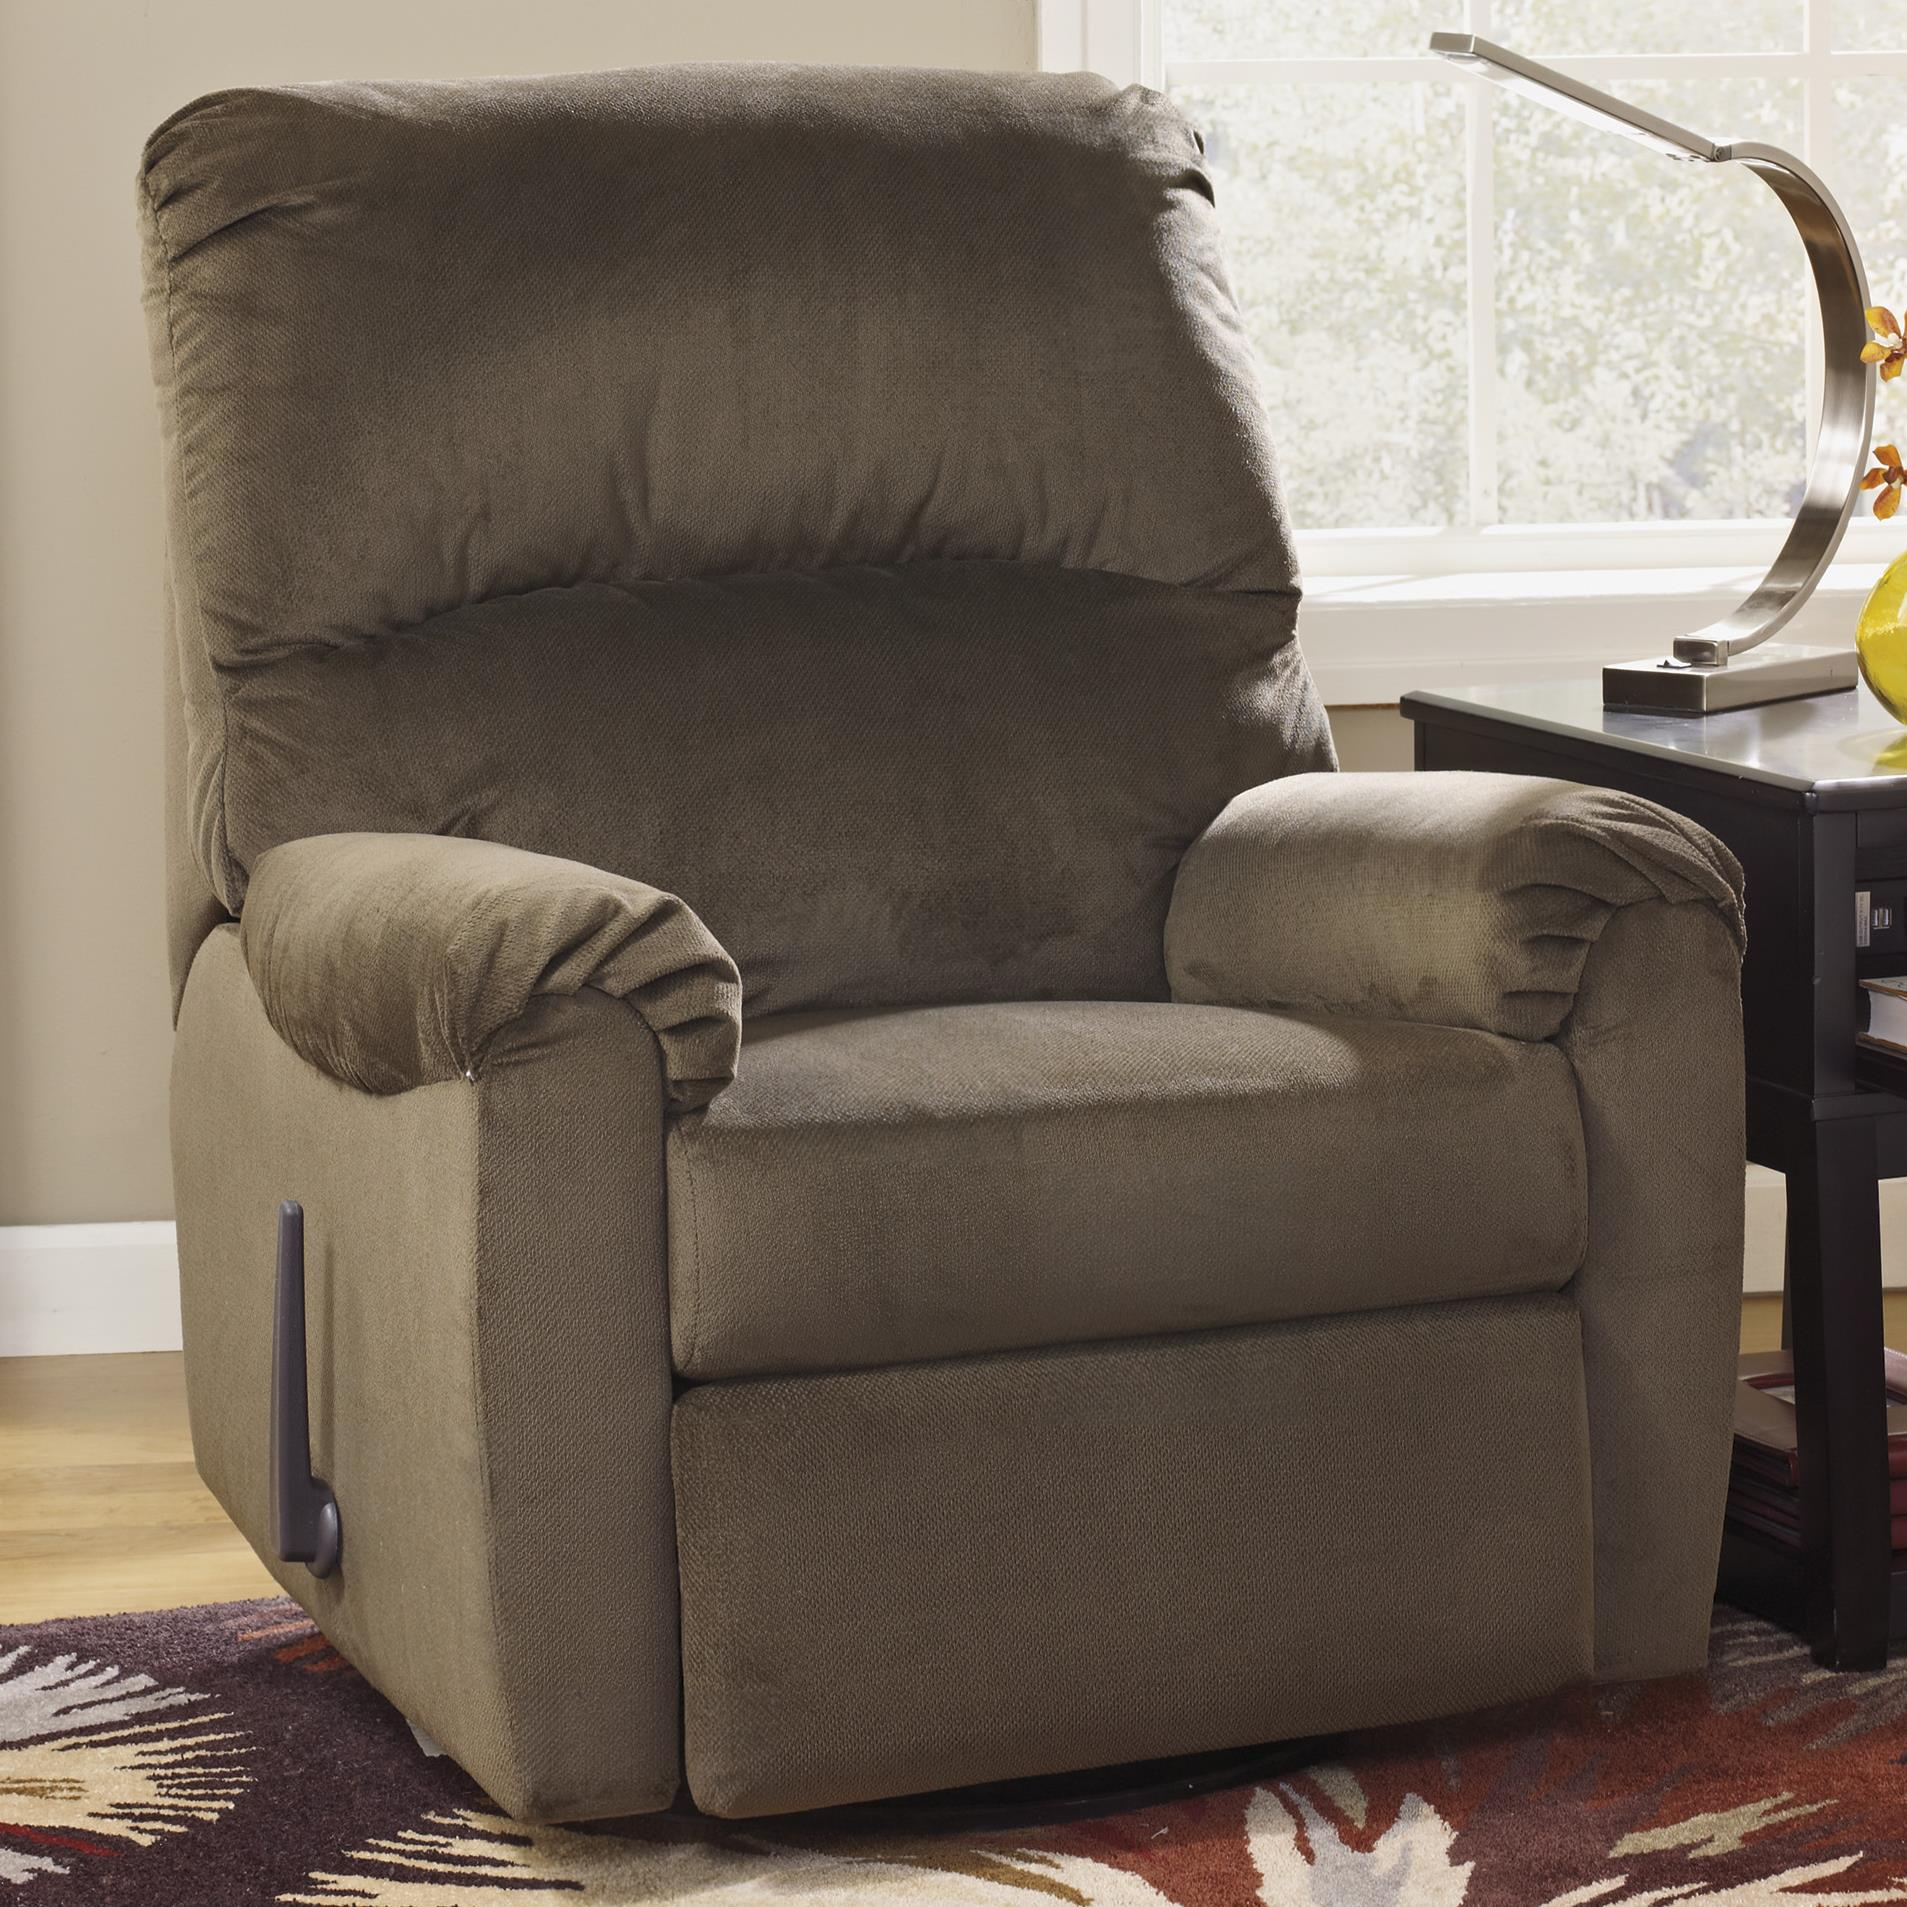 Signature Design by Ashley McFarin Umber Casual Swivel Glider